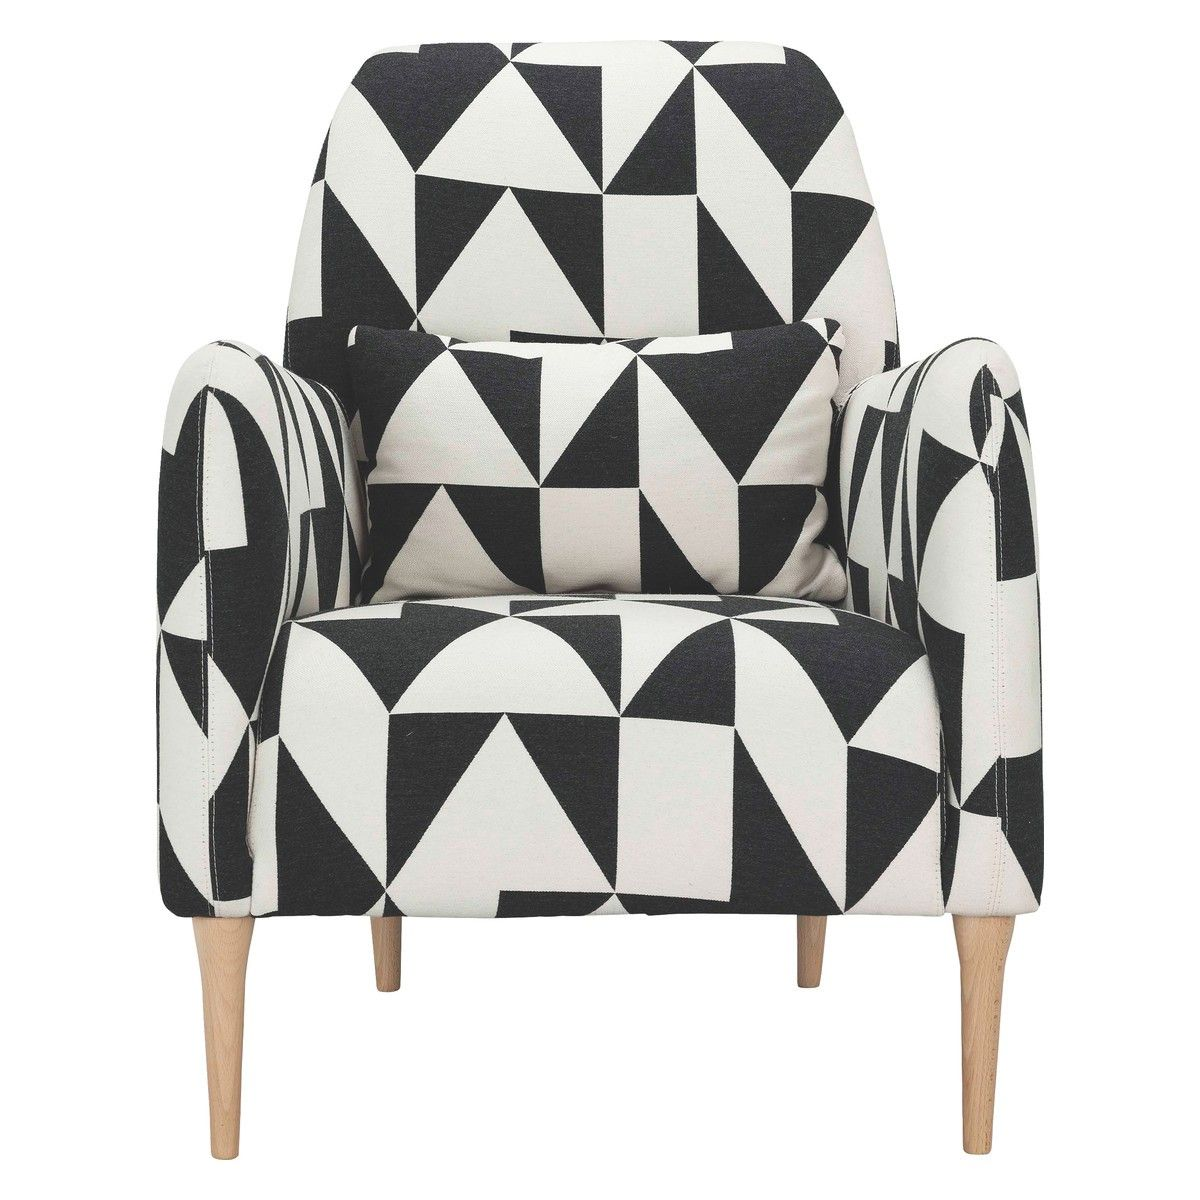 Black White Geometric Fabric Patterned Armchair Black And White